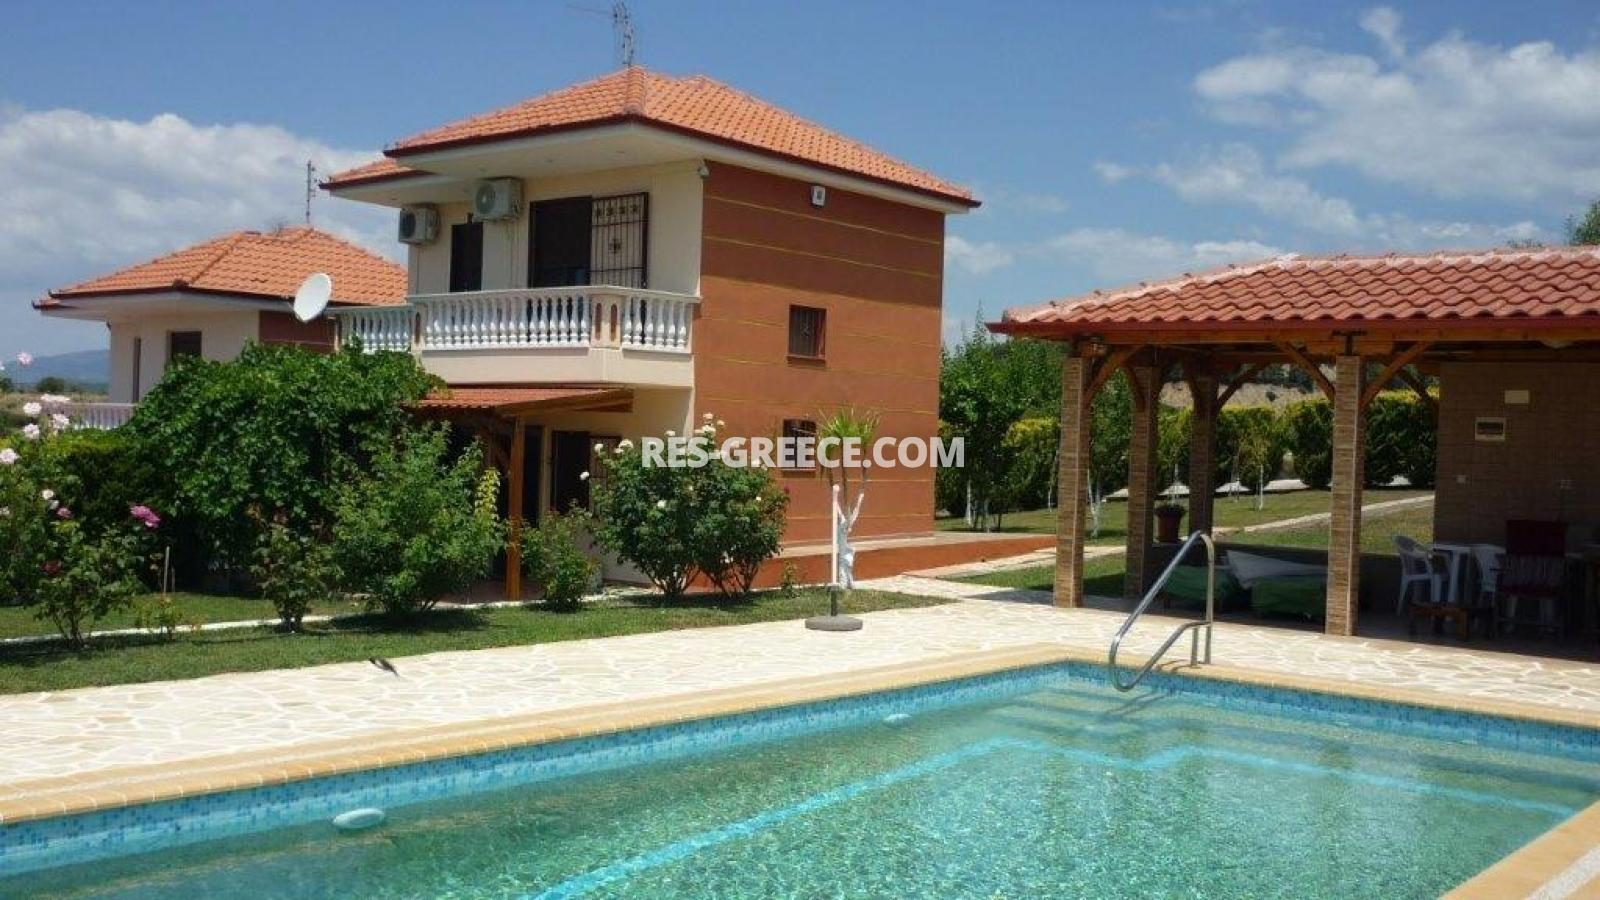 Eleones, Halkidiki-Sithonia, Greece - villa with a pool with great views and big garden - Photo 2